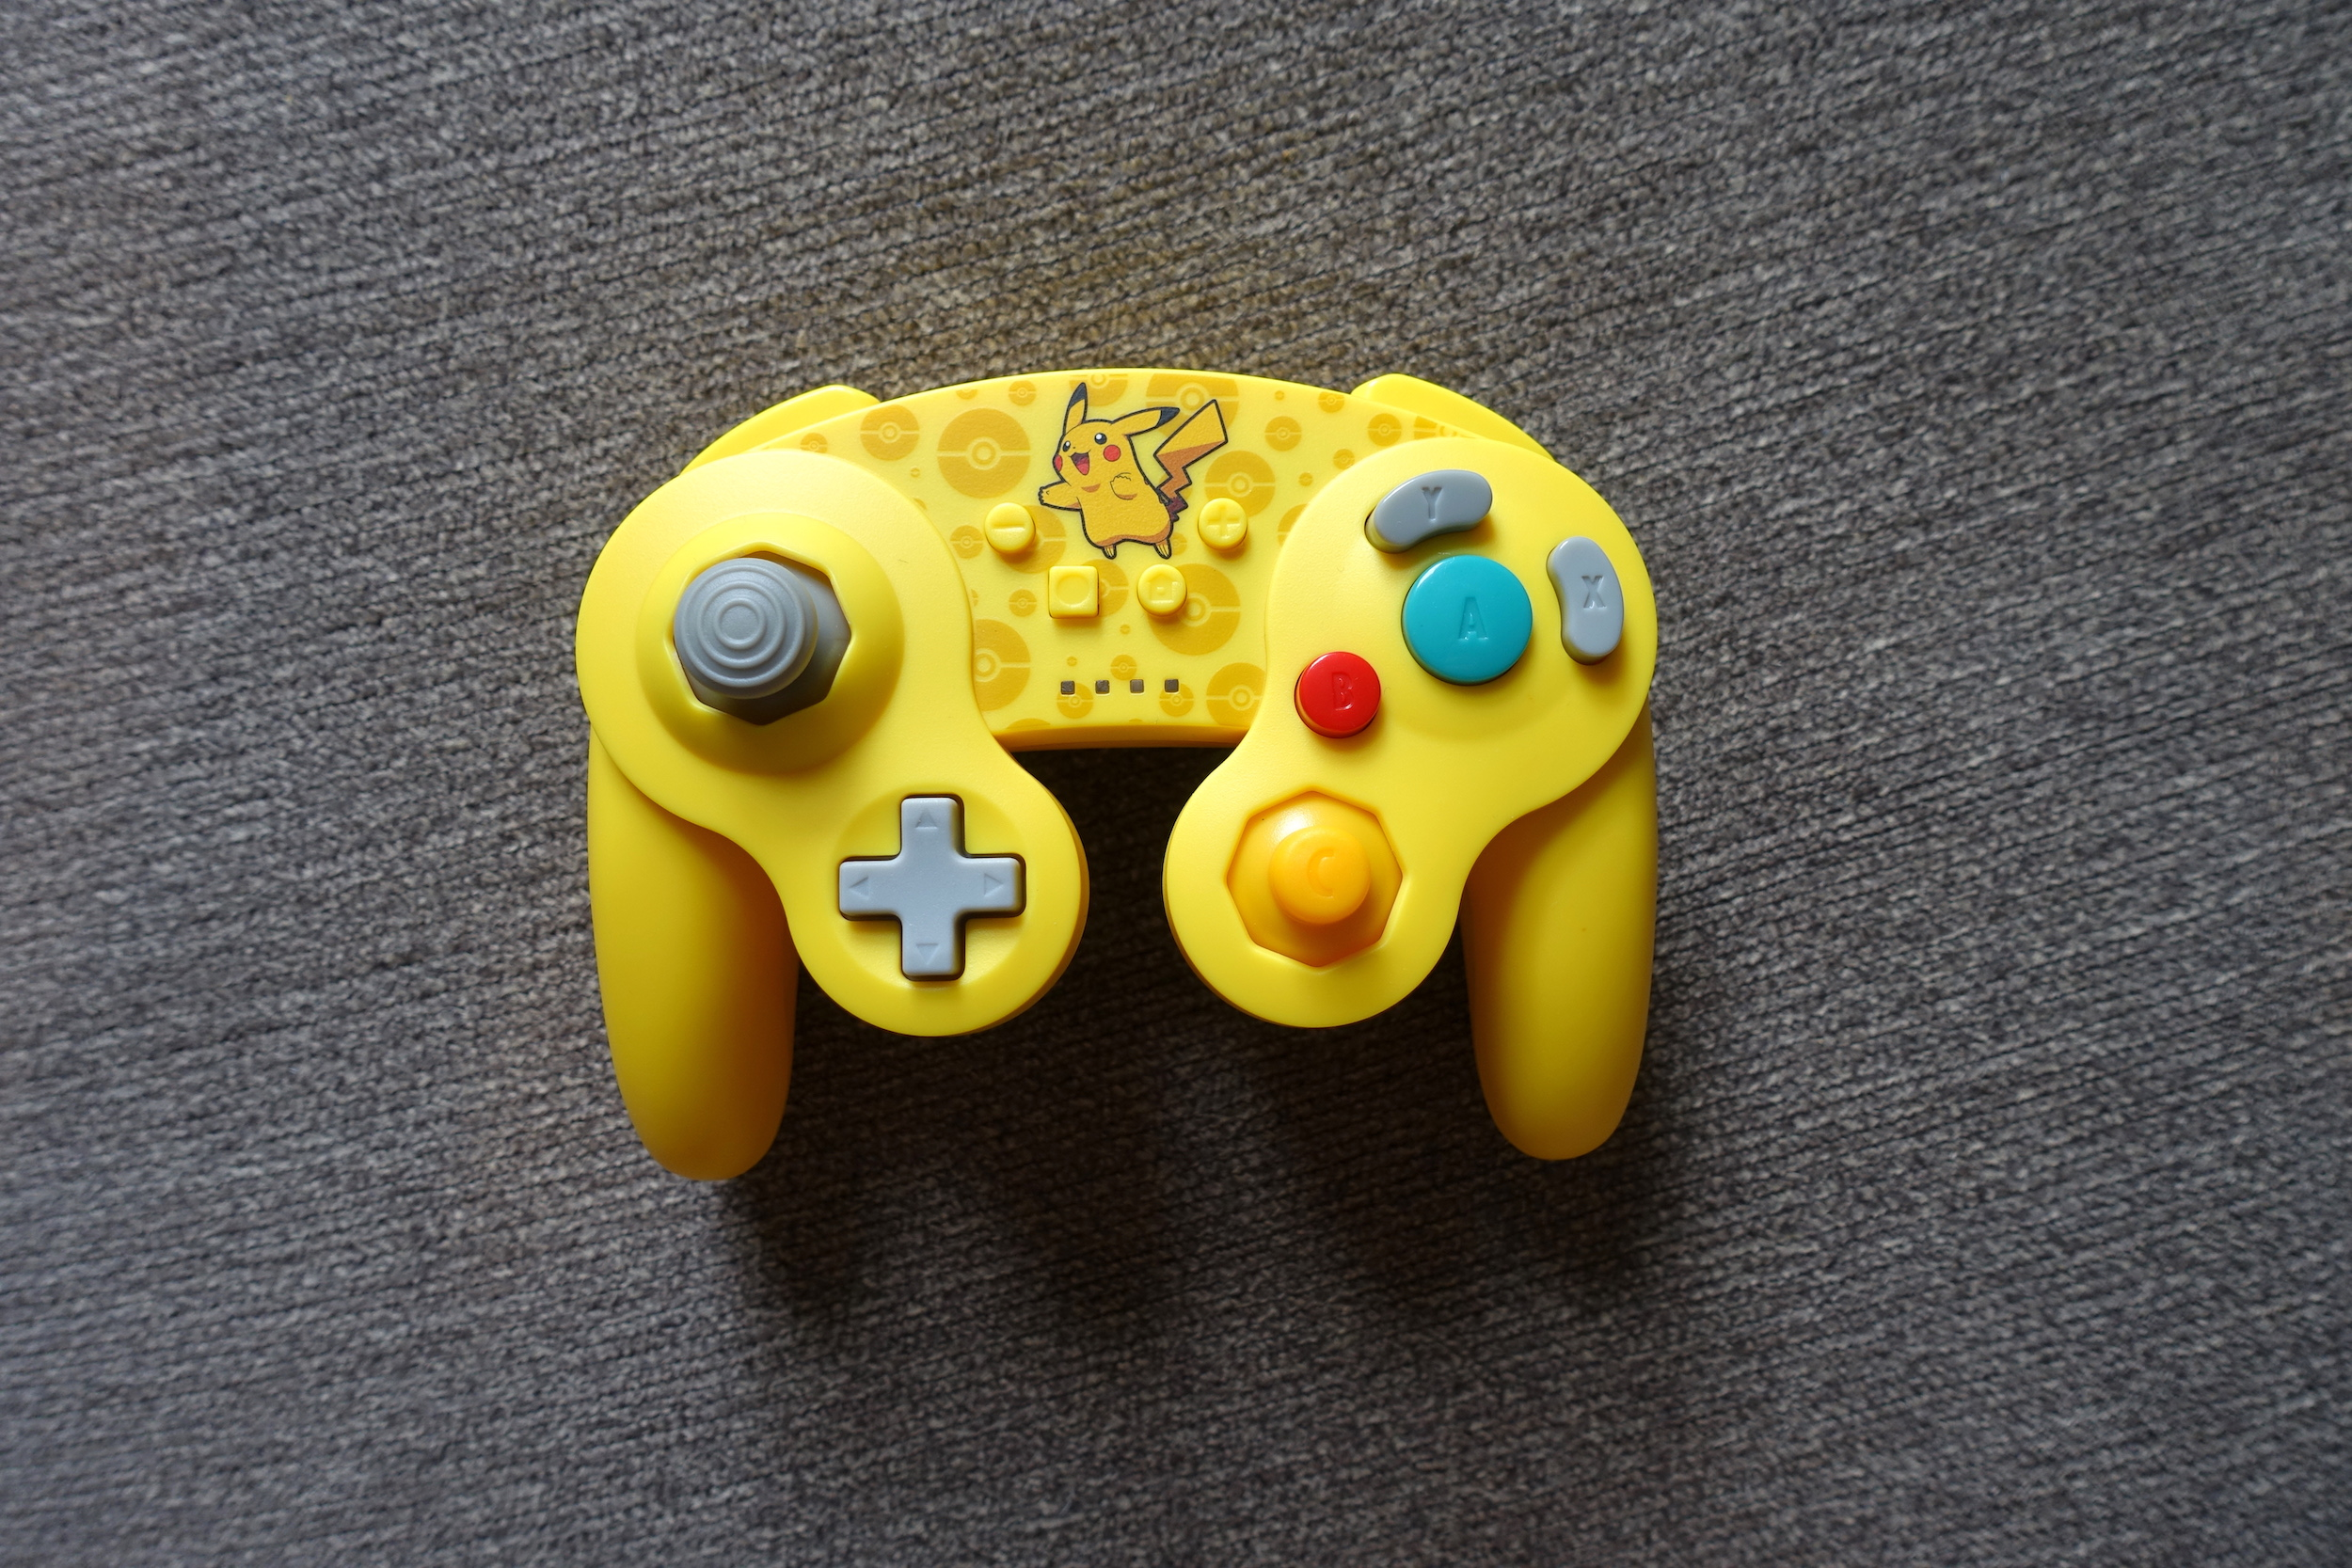 The PowerA GameCube Style Wireless Controller for Nintendo Switch. PowerA sent us this Pikachu-themed unit, but it comes in more traditional colorways as well.